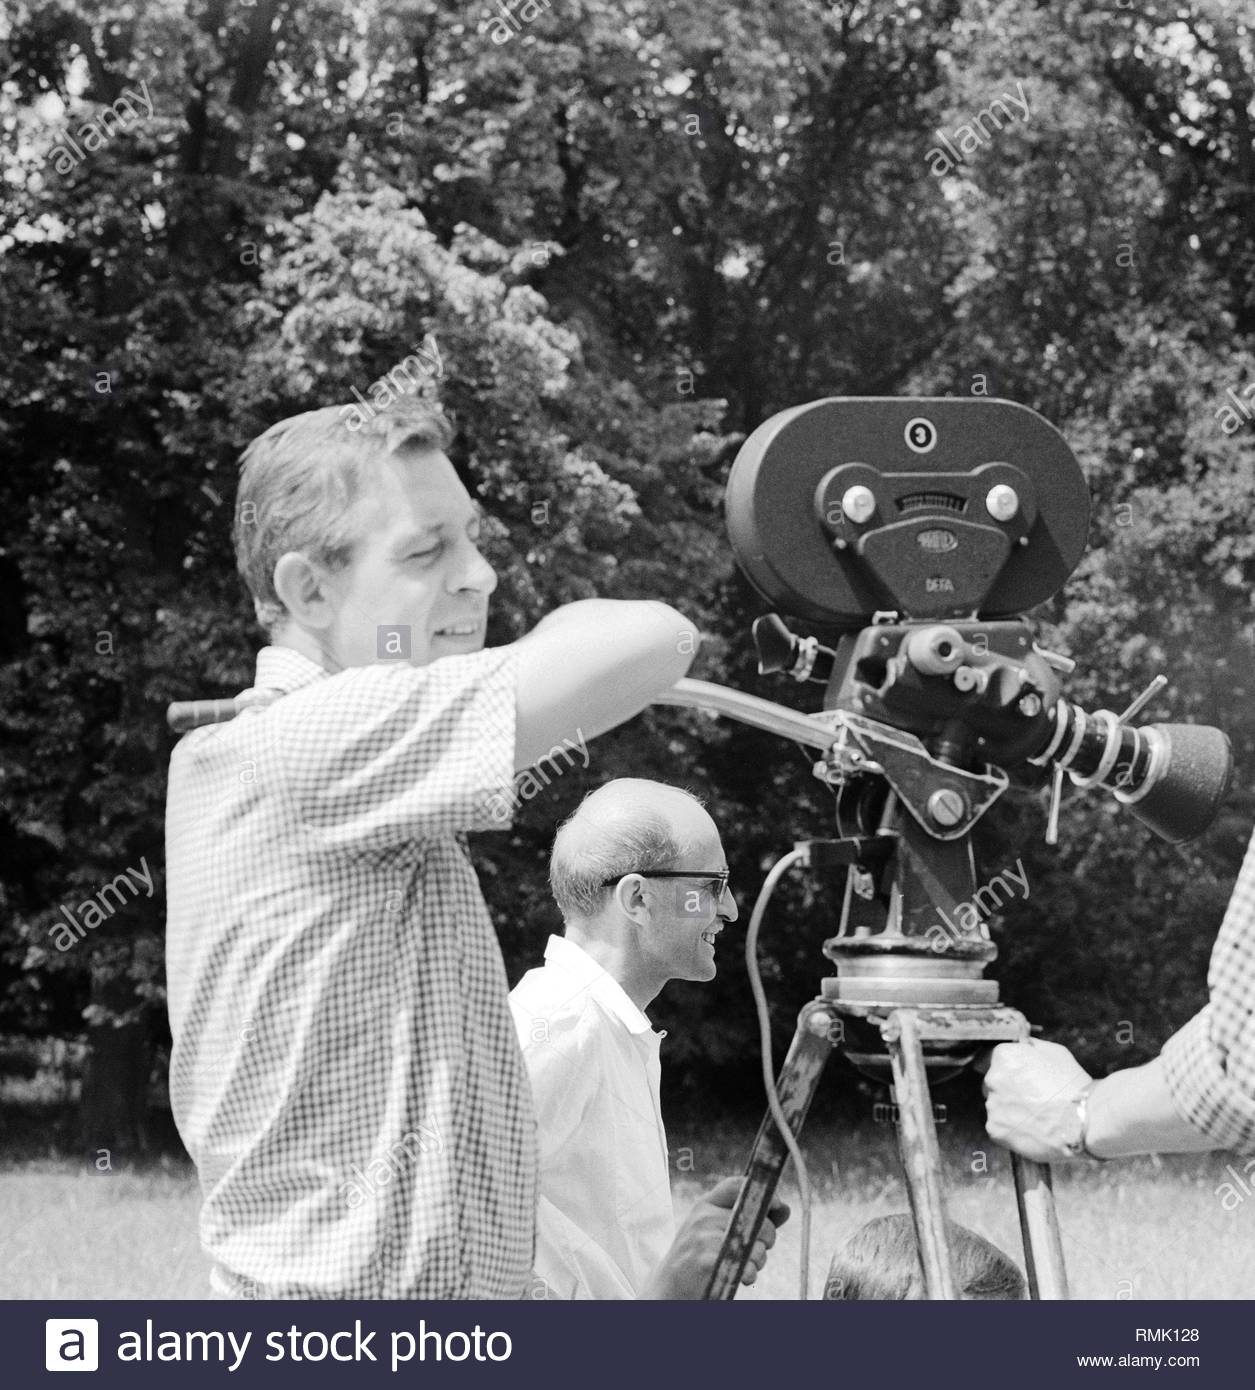 Cameraman with a ARRIFLEX SLR film camera with film shooting in the park at Sanssouci in Potsdam in Brandenburg on the territory of the former GDR, German Democratic Republic. - Stock Image